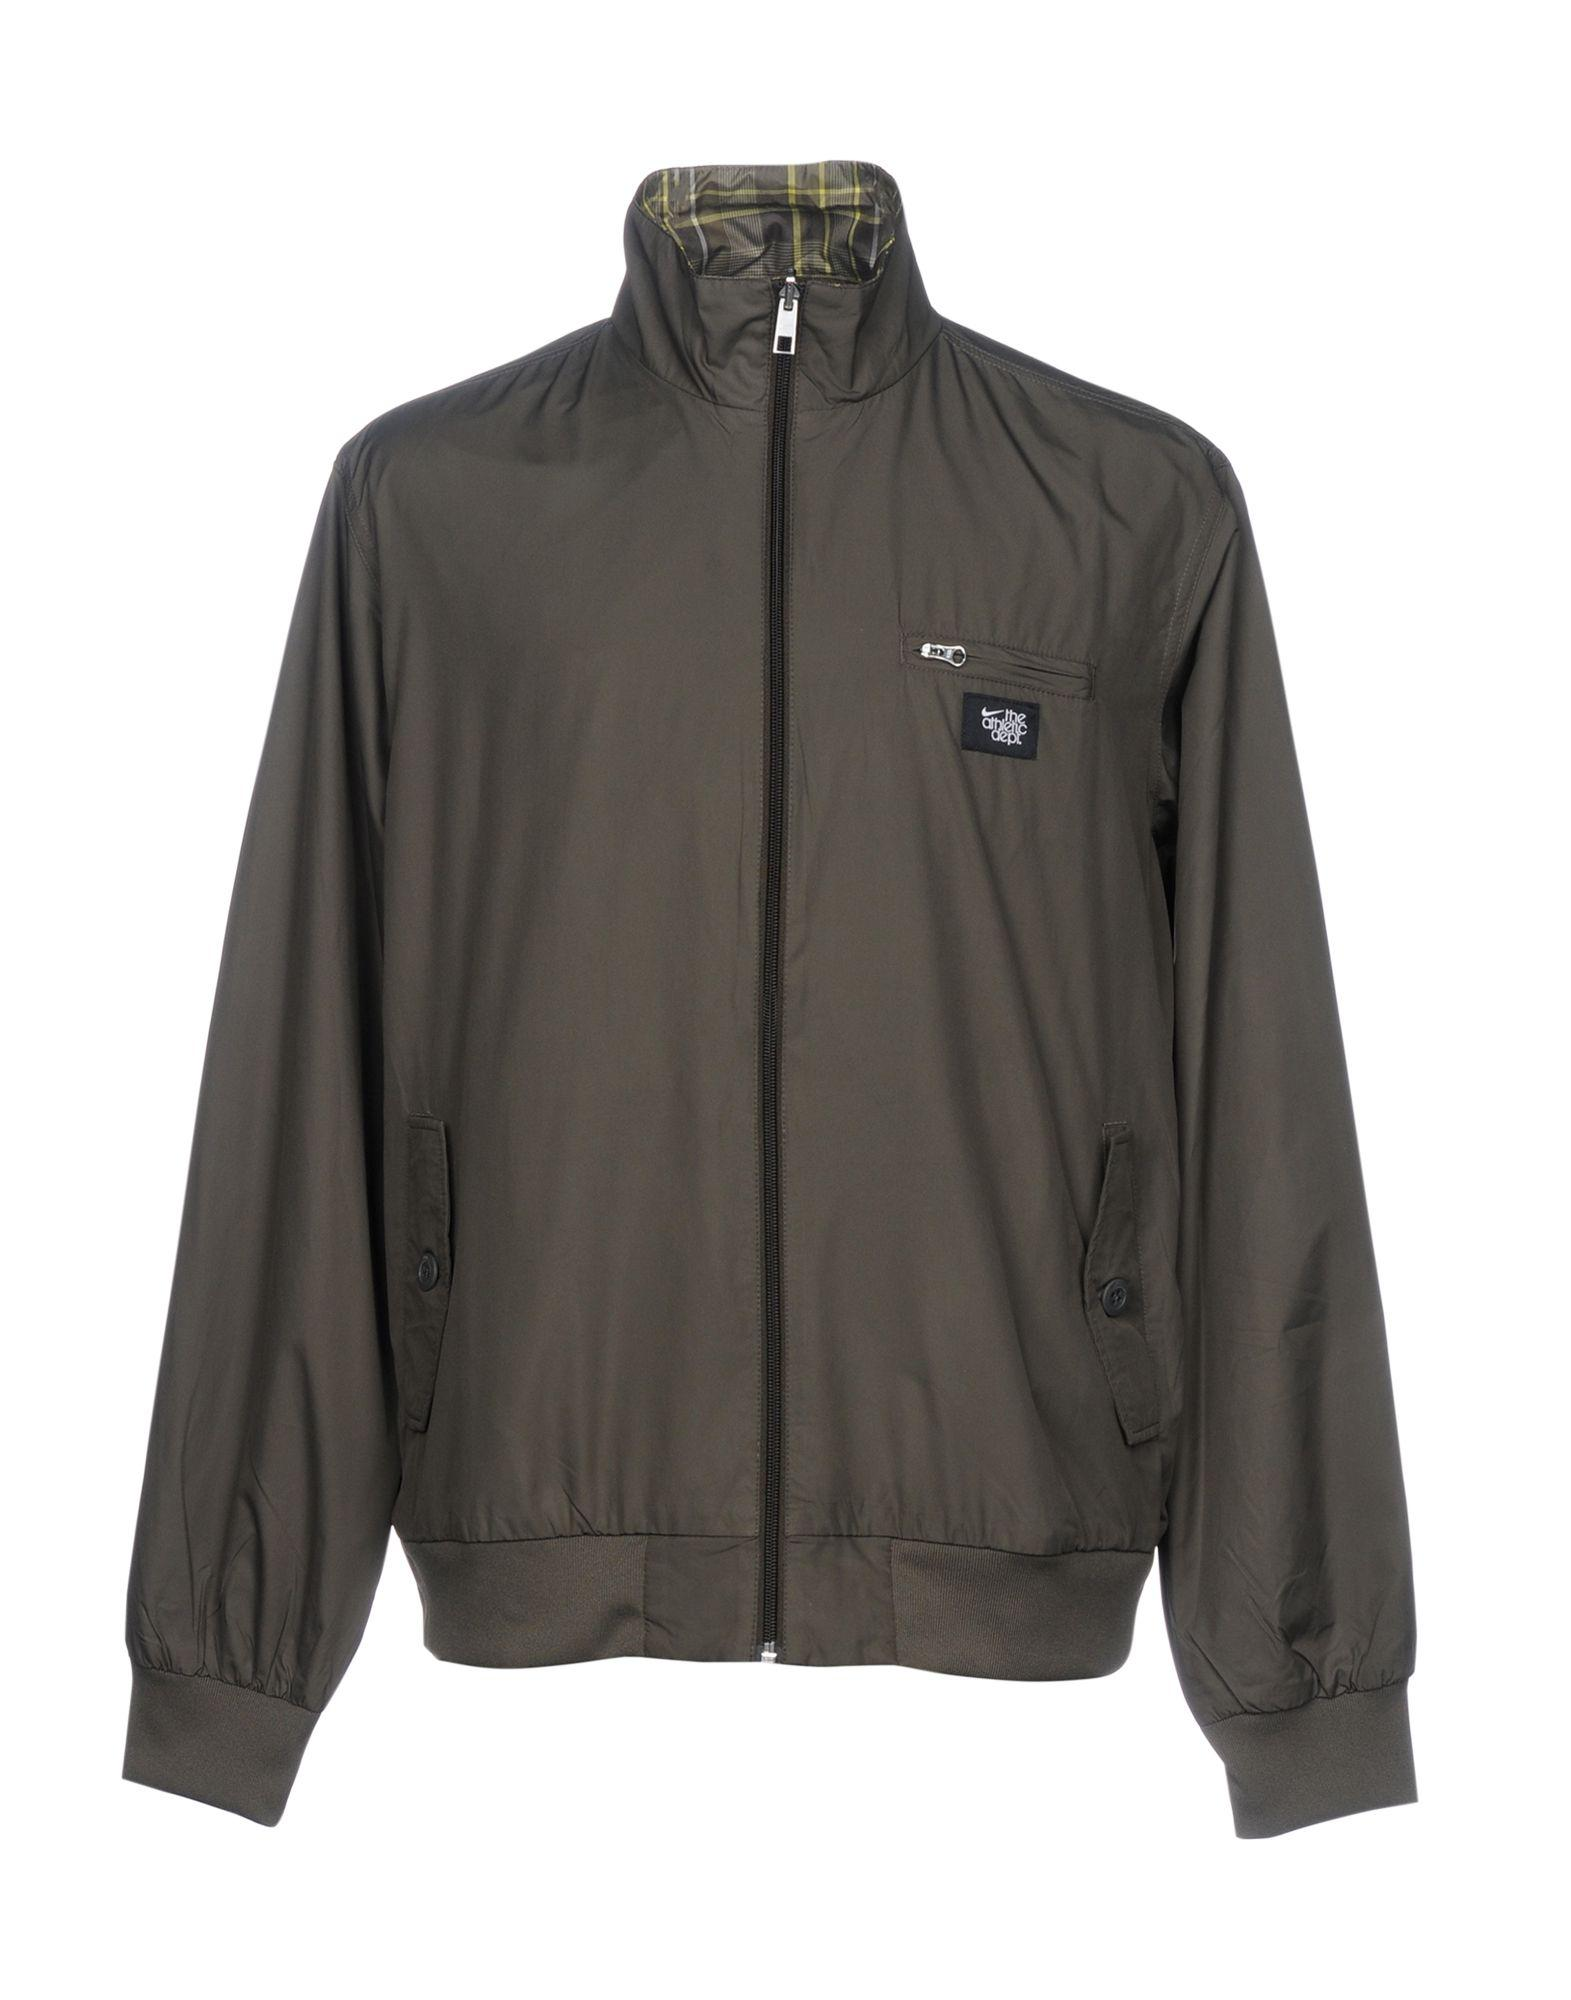 Nike Jackets In Military Green